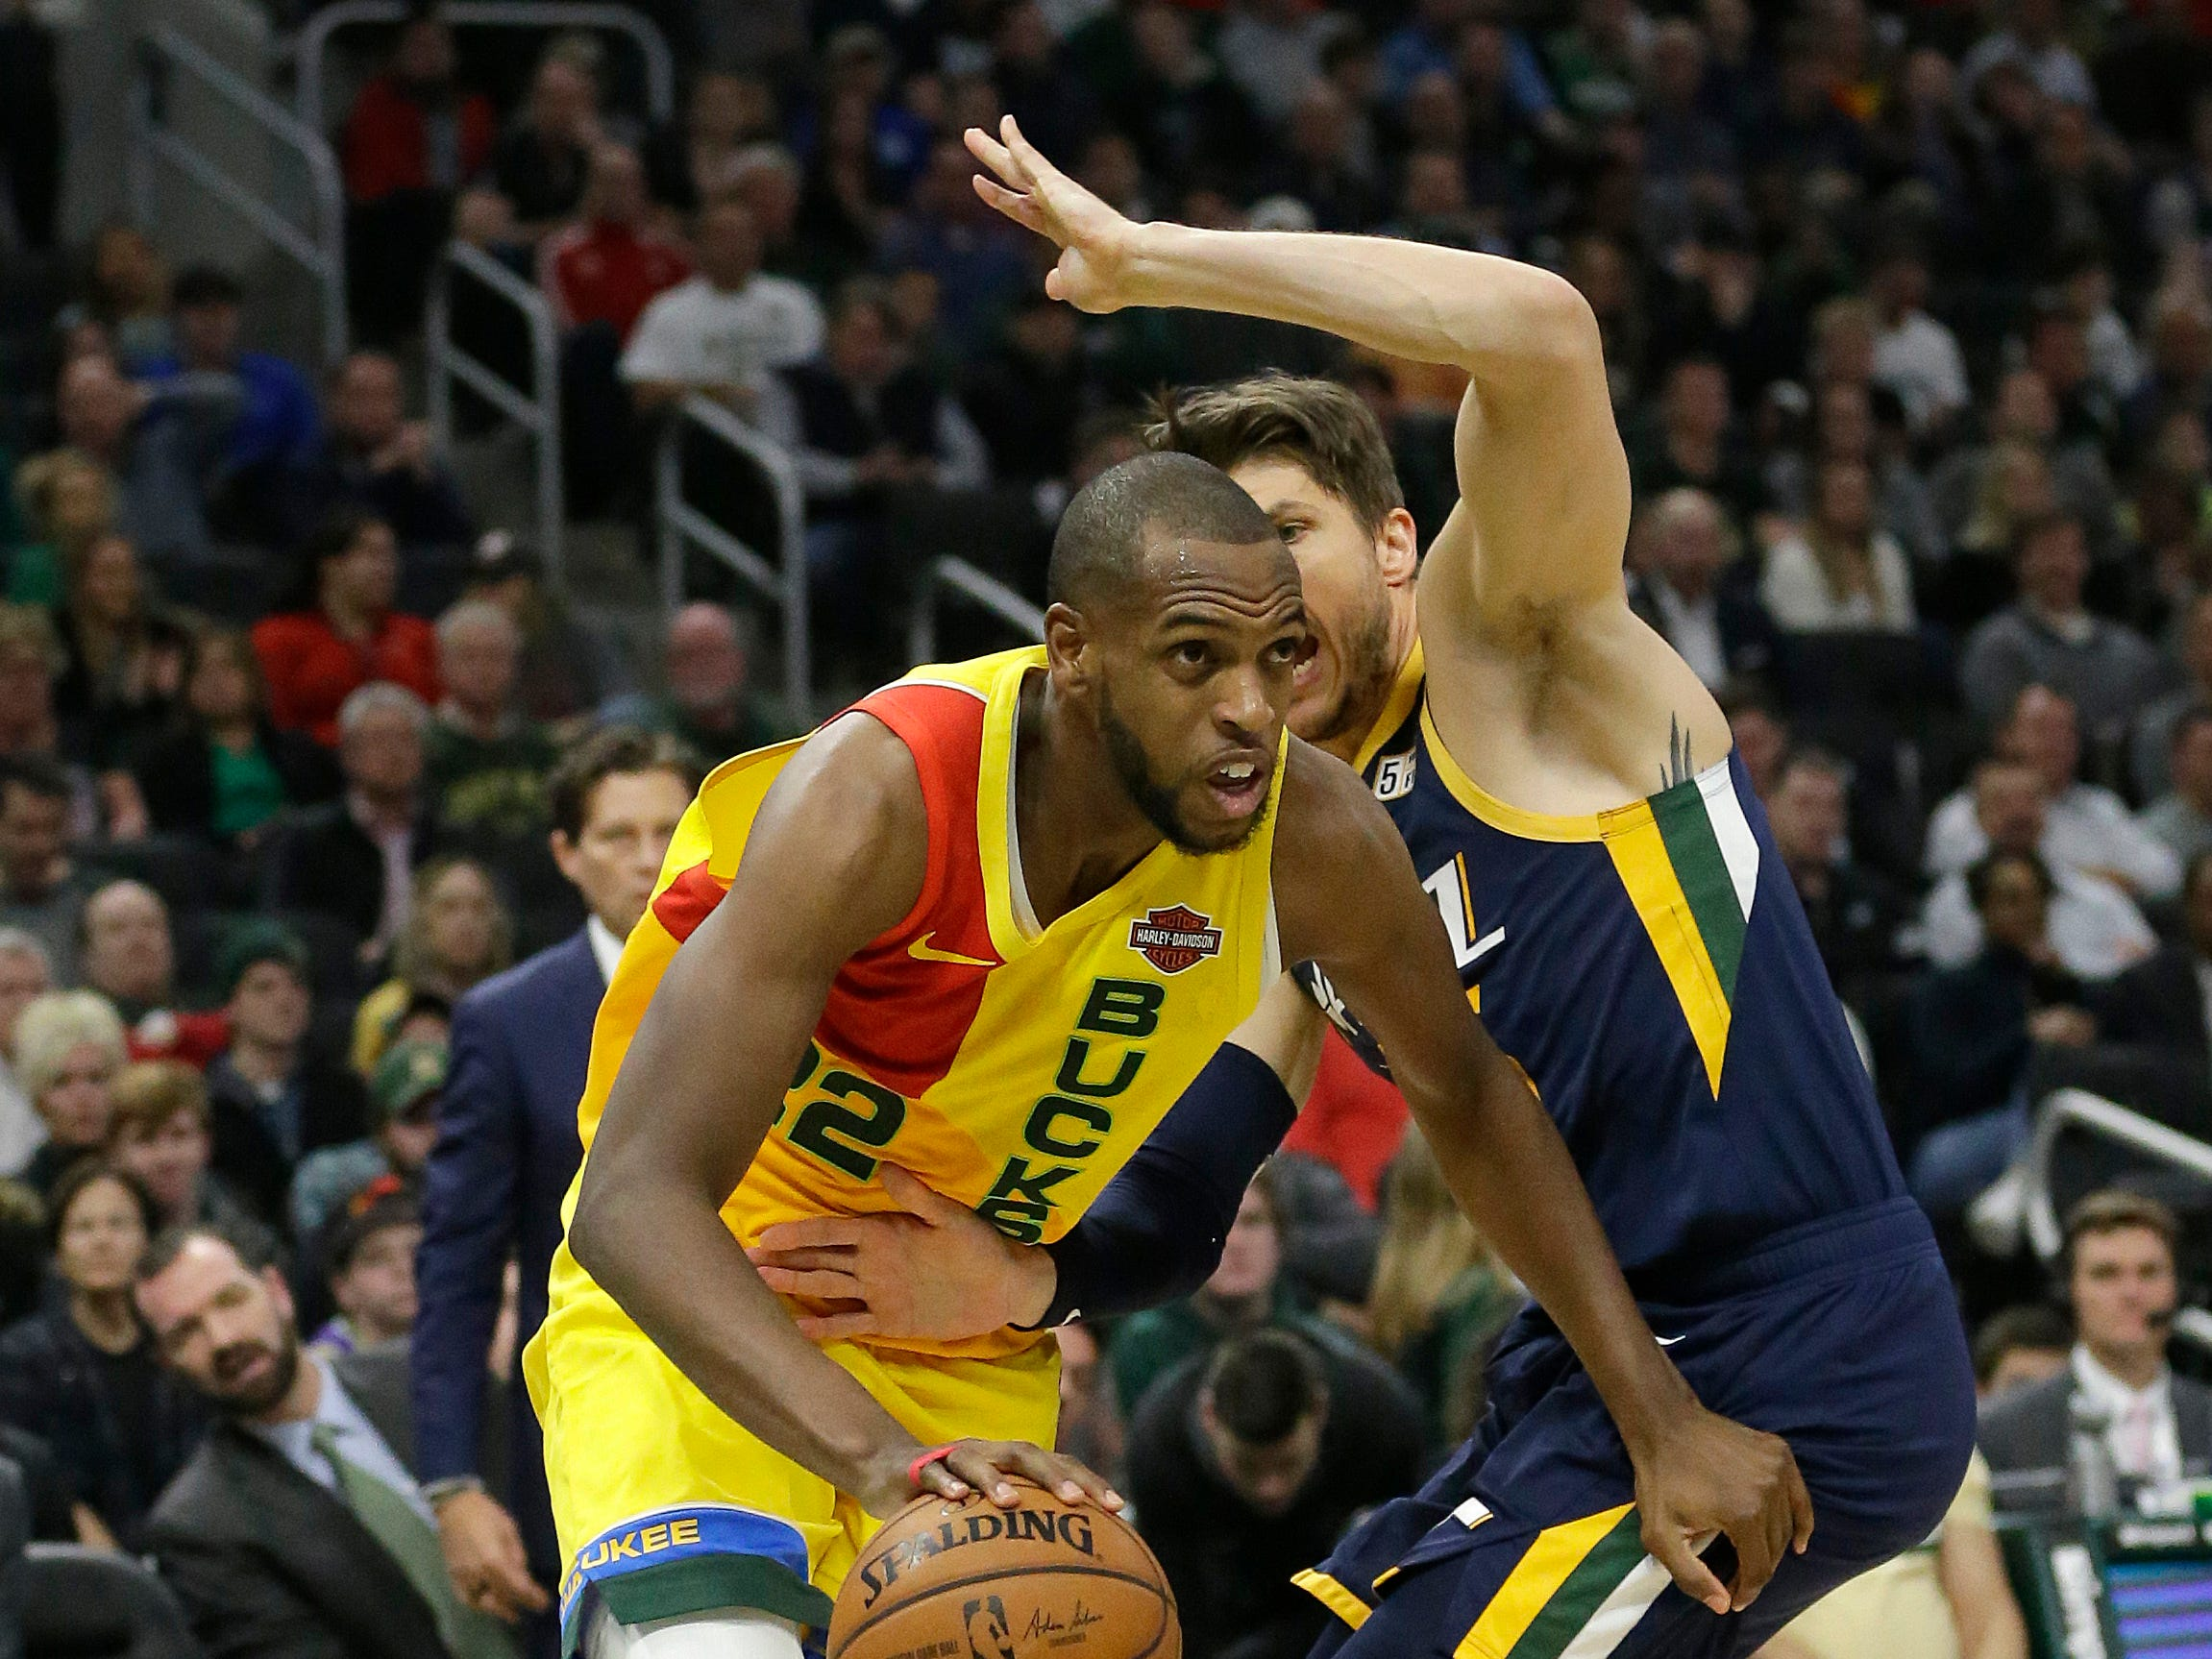 Khris Middleton of the Bucks gets past Kyle Korver of the Jazz as he heads to the basket along the baseline on Monday night.